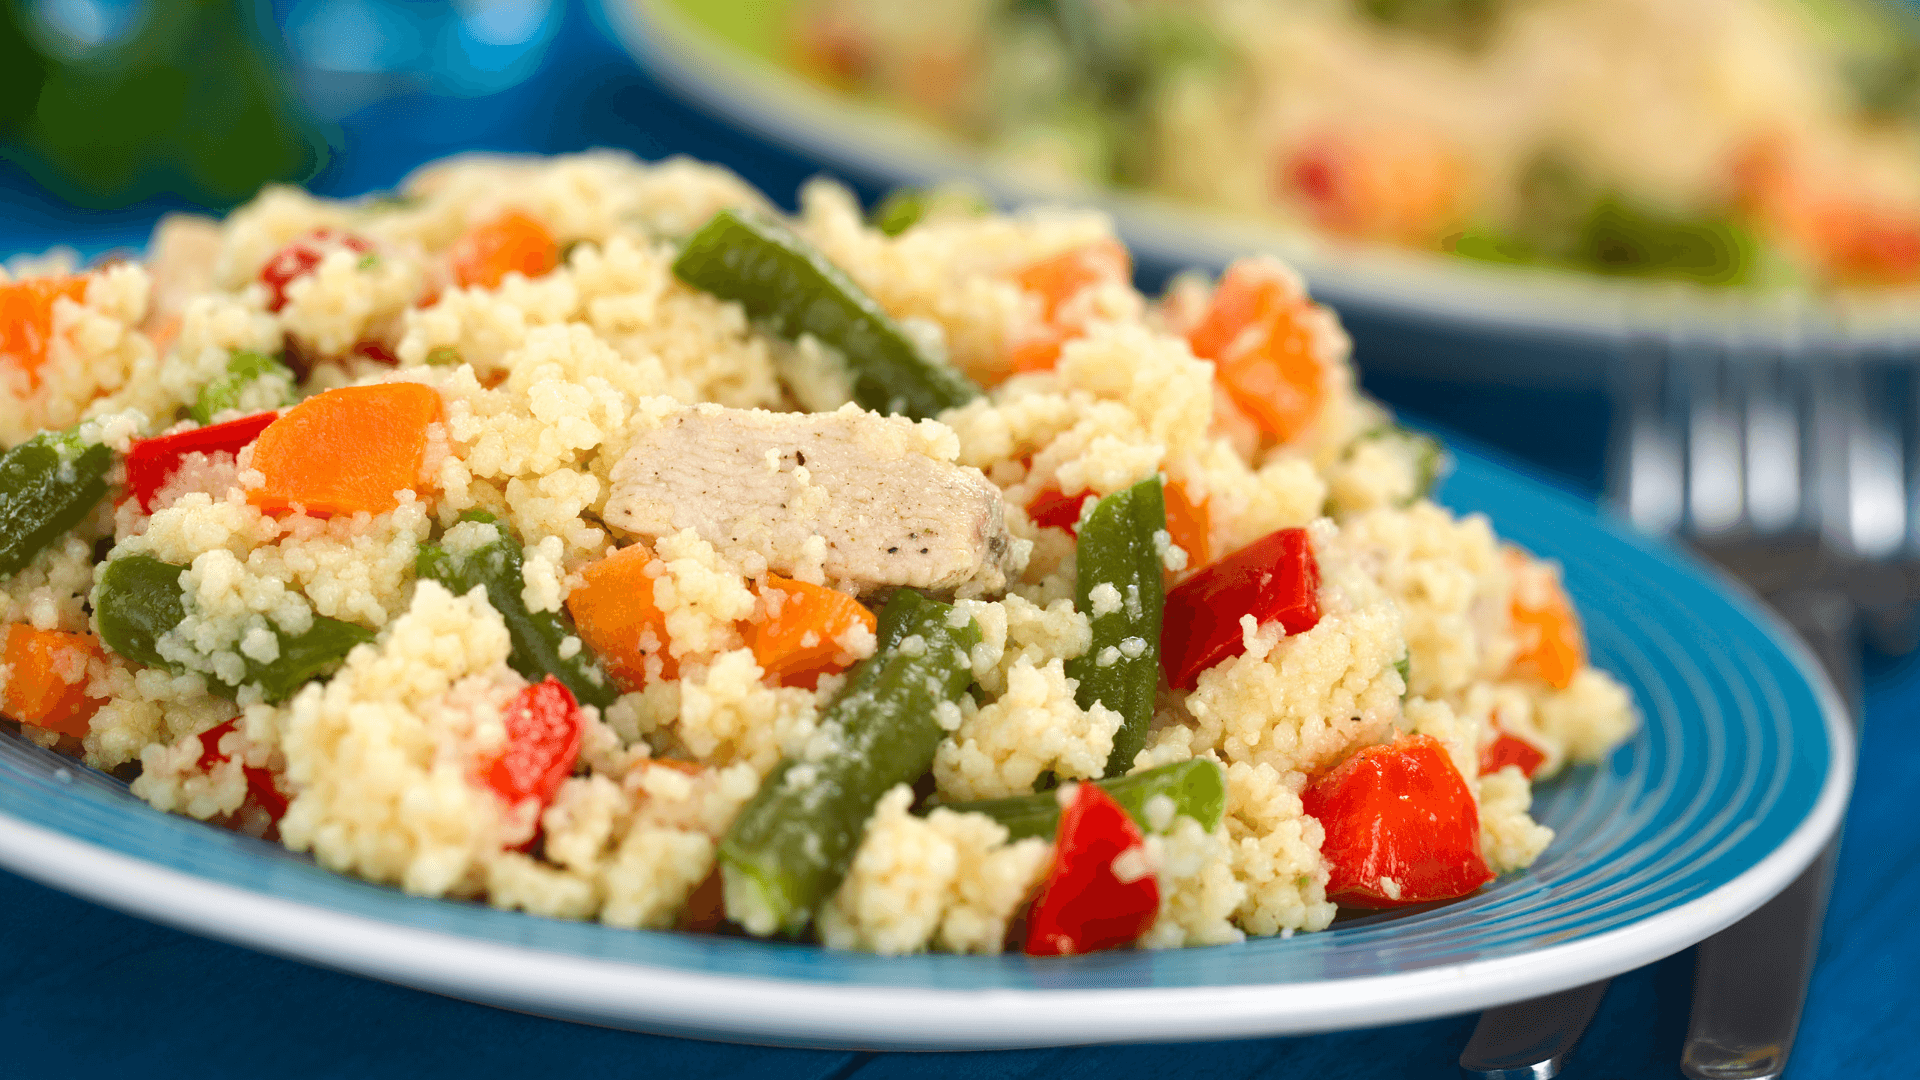 Couscous - Morocco Food Guide: Delicious foods you need to try while visiting Morocco